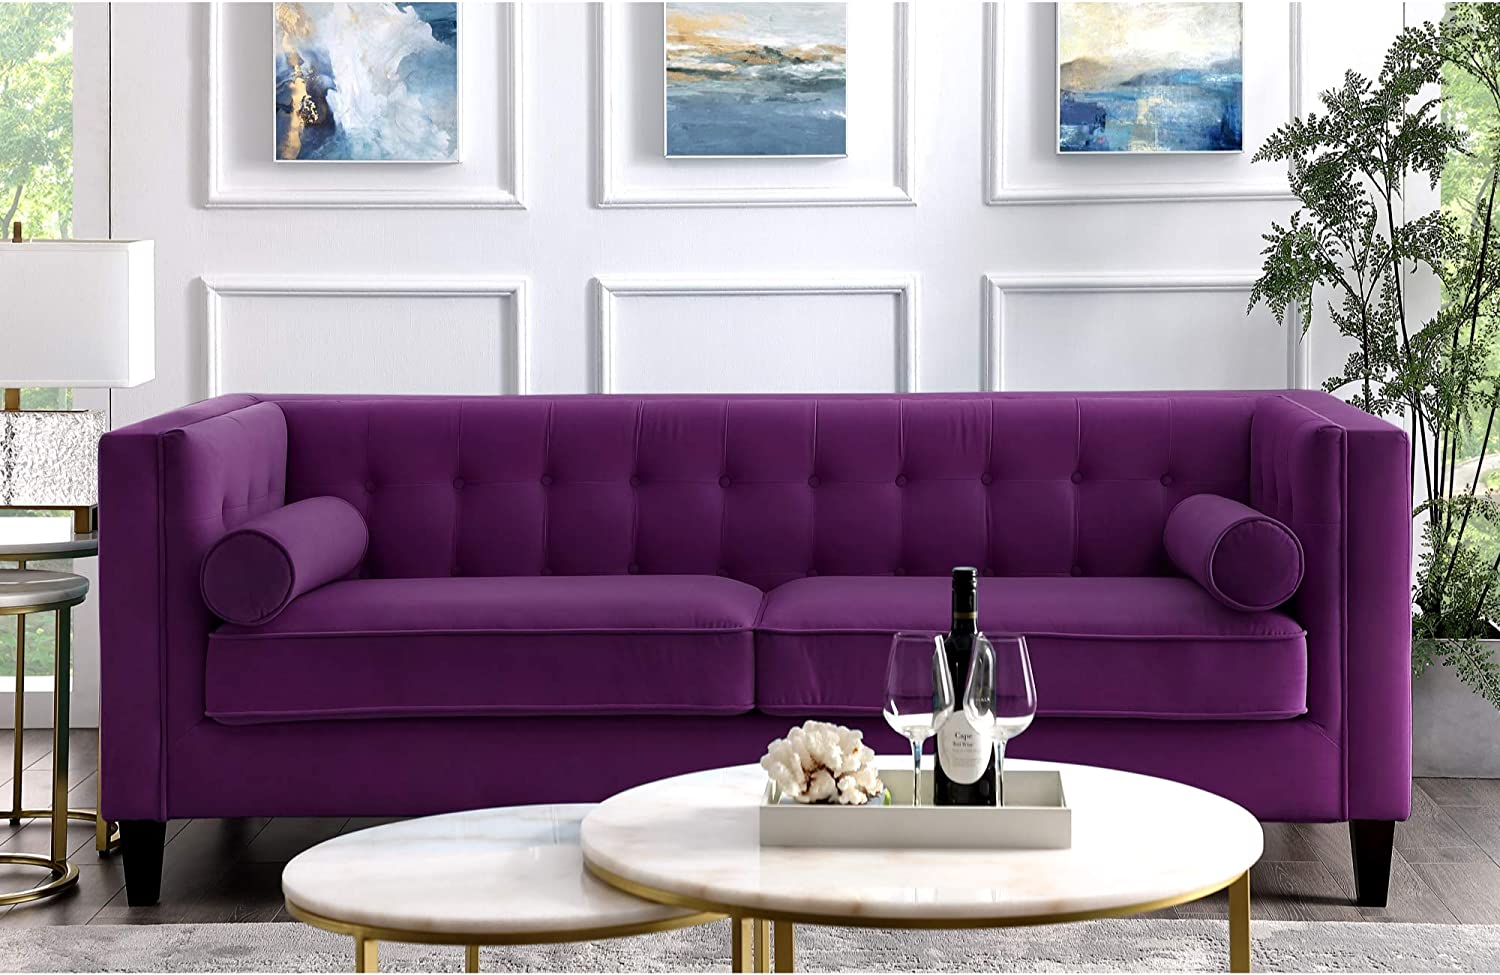 Amazon.com: Inspired Home Purple Velvet Sofa - Design: Lotte | Tufted |  Square Arms | Tapered Legs | Contemporary: Kitchen & Dining